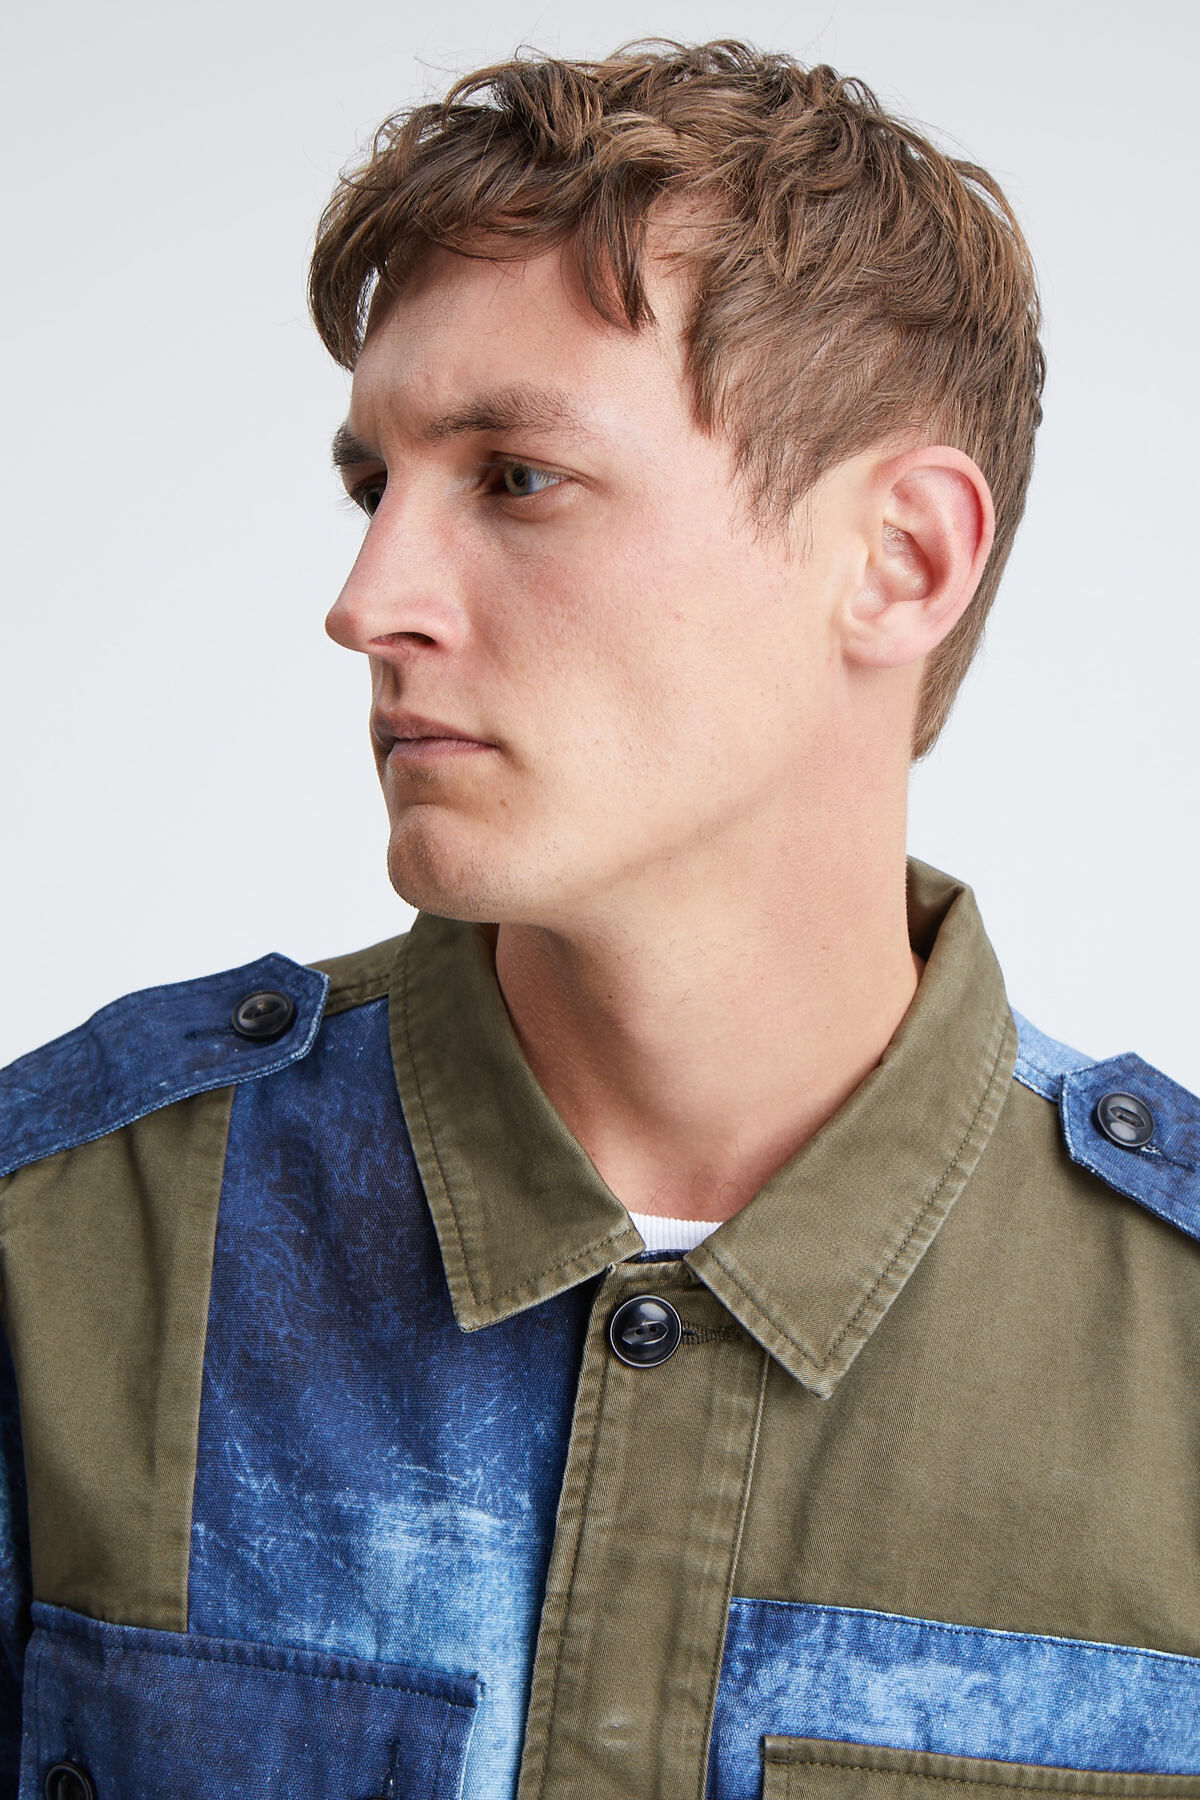 BELFIELD COMBAT JACKET Digitally Printed Cotton - Regular Fit